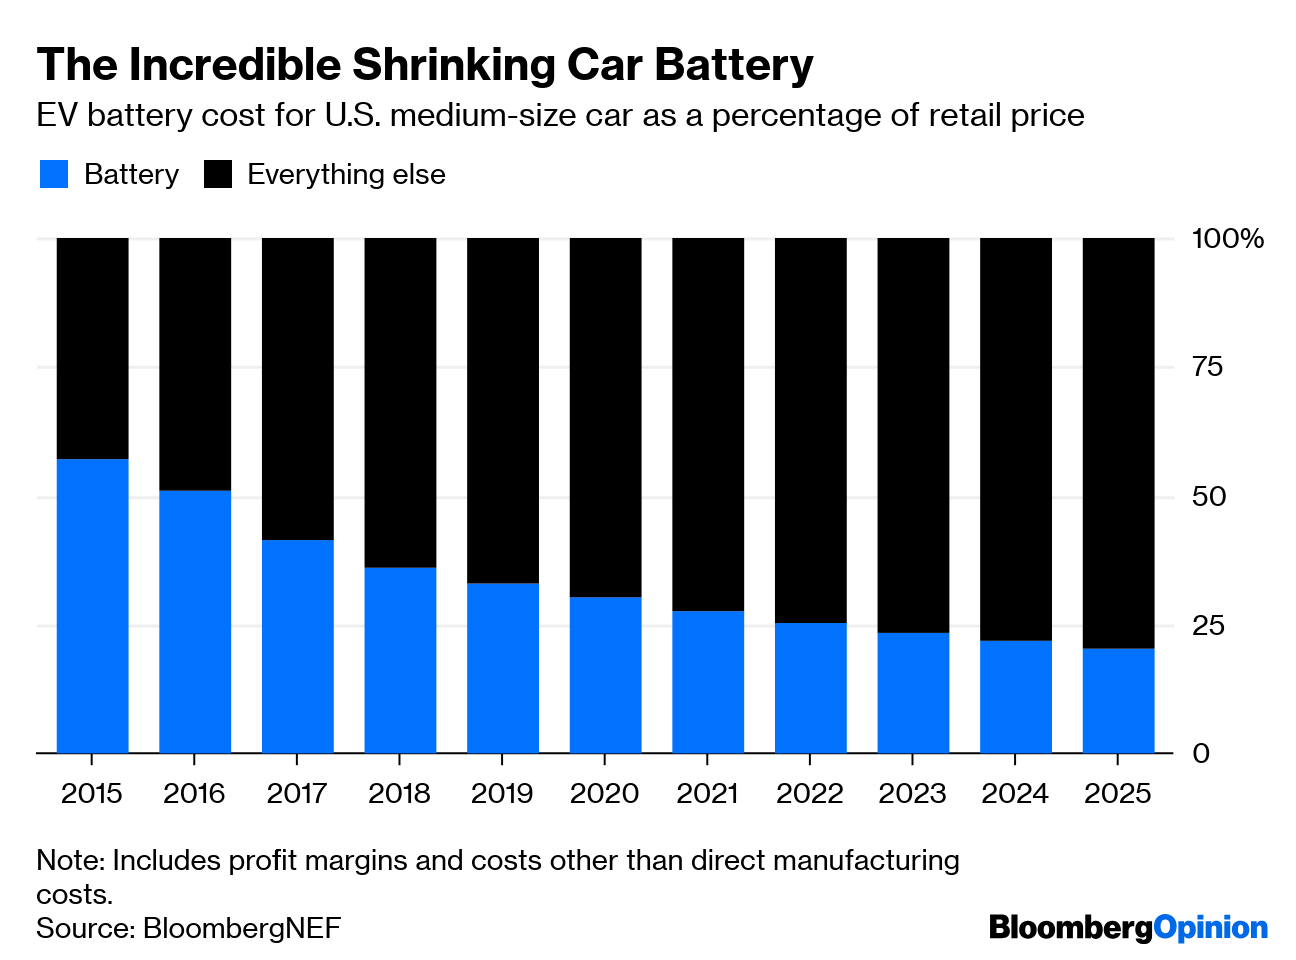 ev-battery-costs